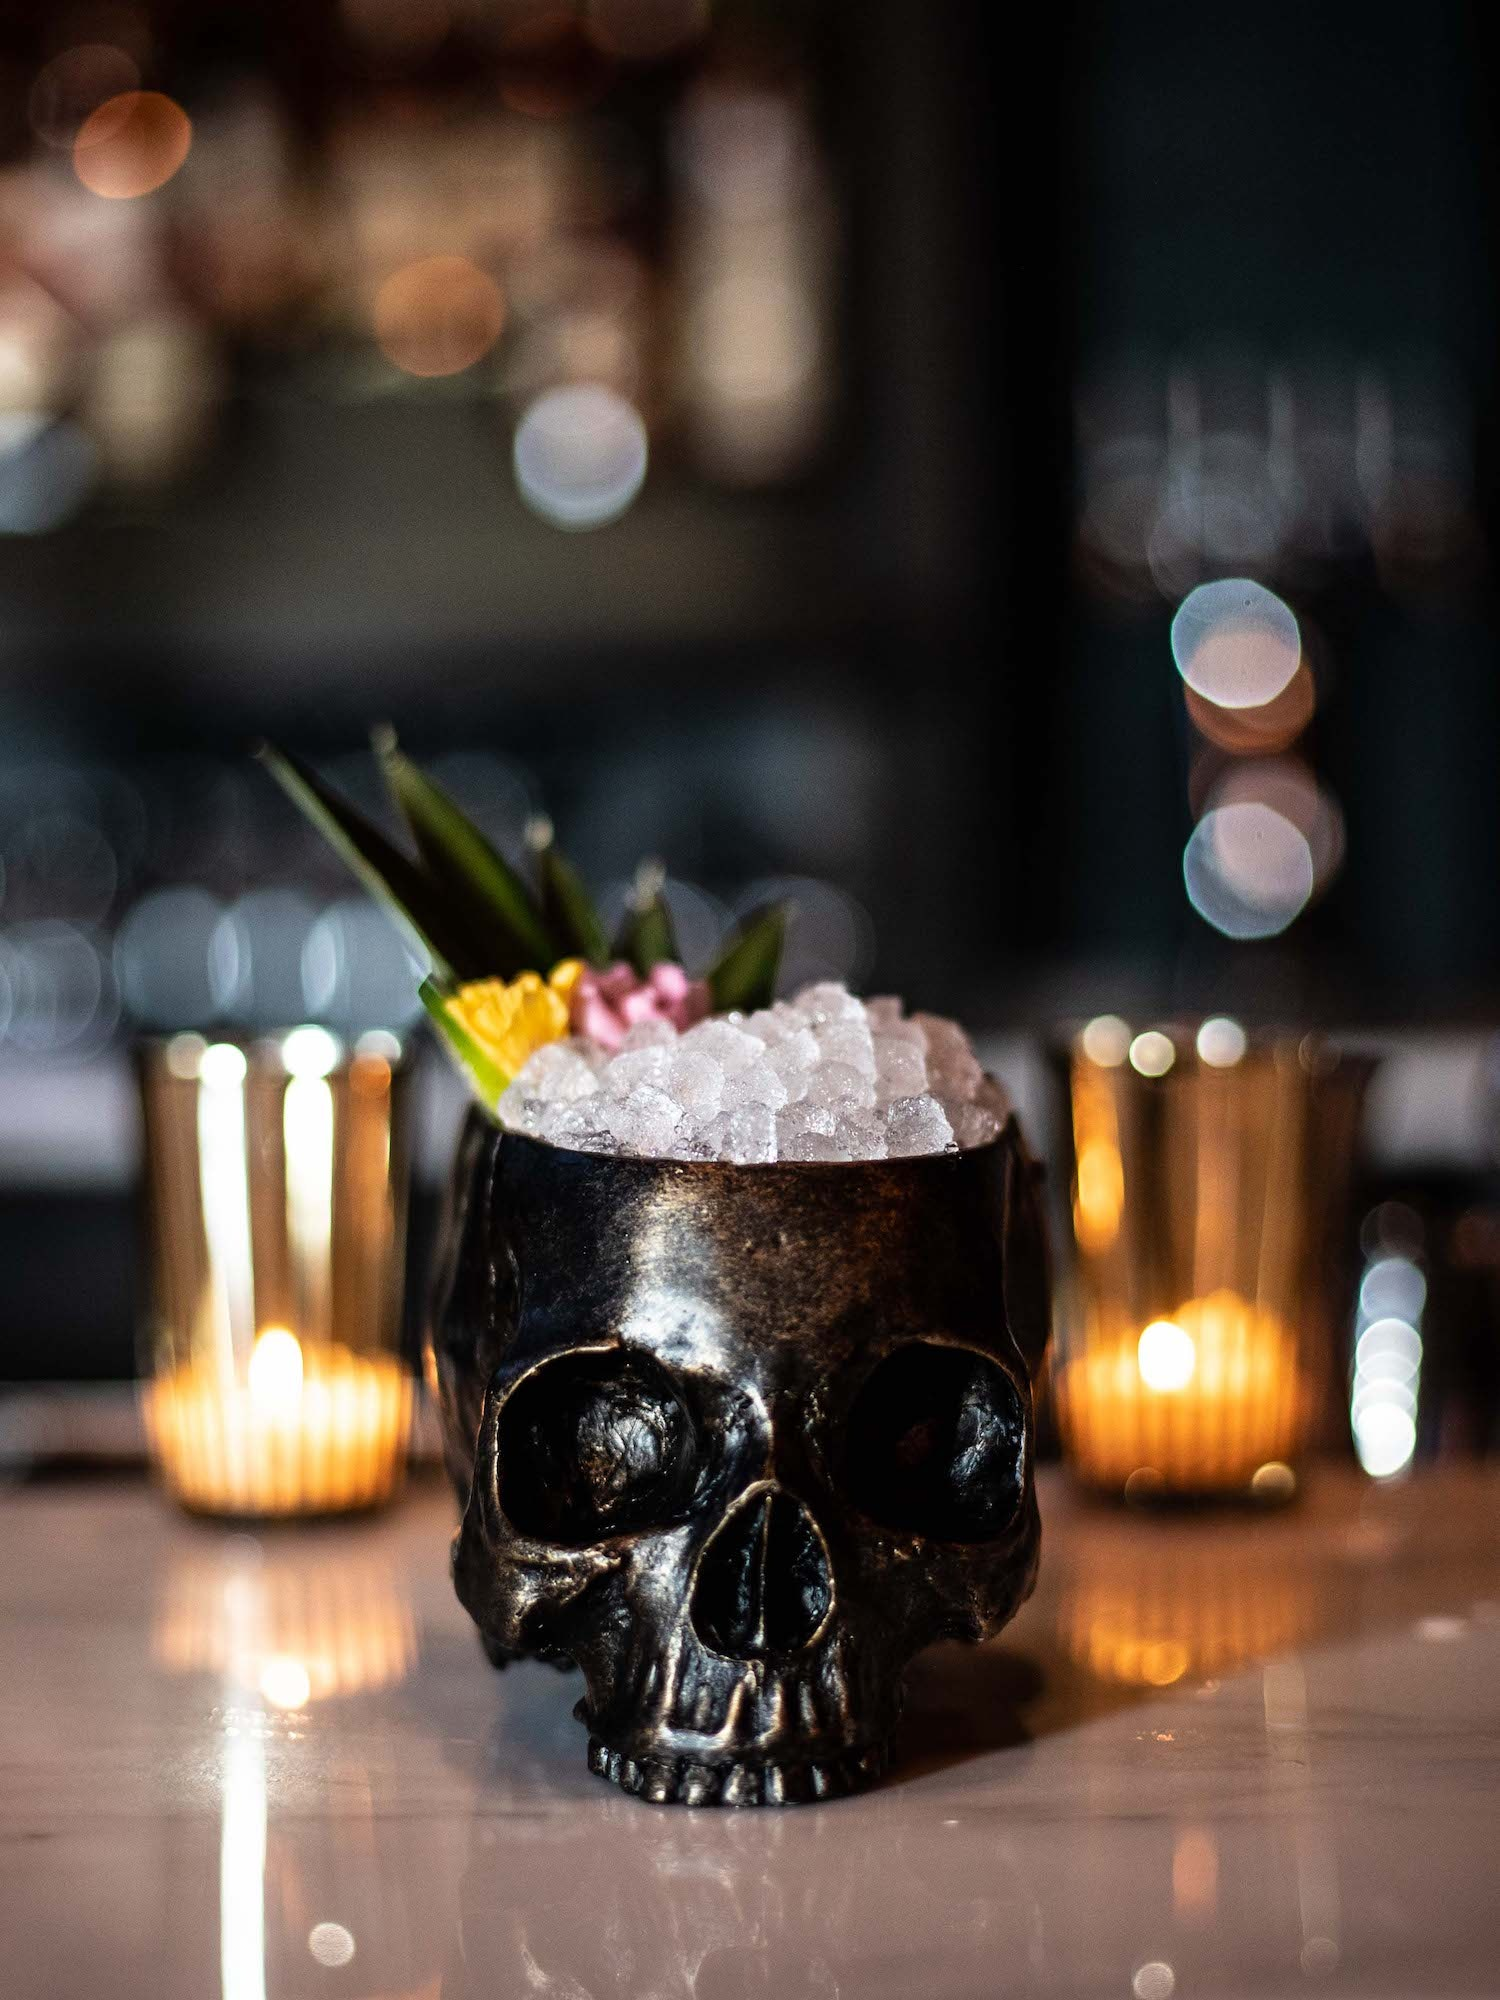 The skull glassware has been a fixture at Death & Co since the bar first opened in 2006.